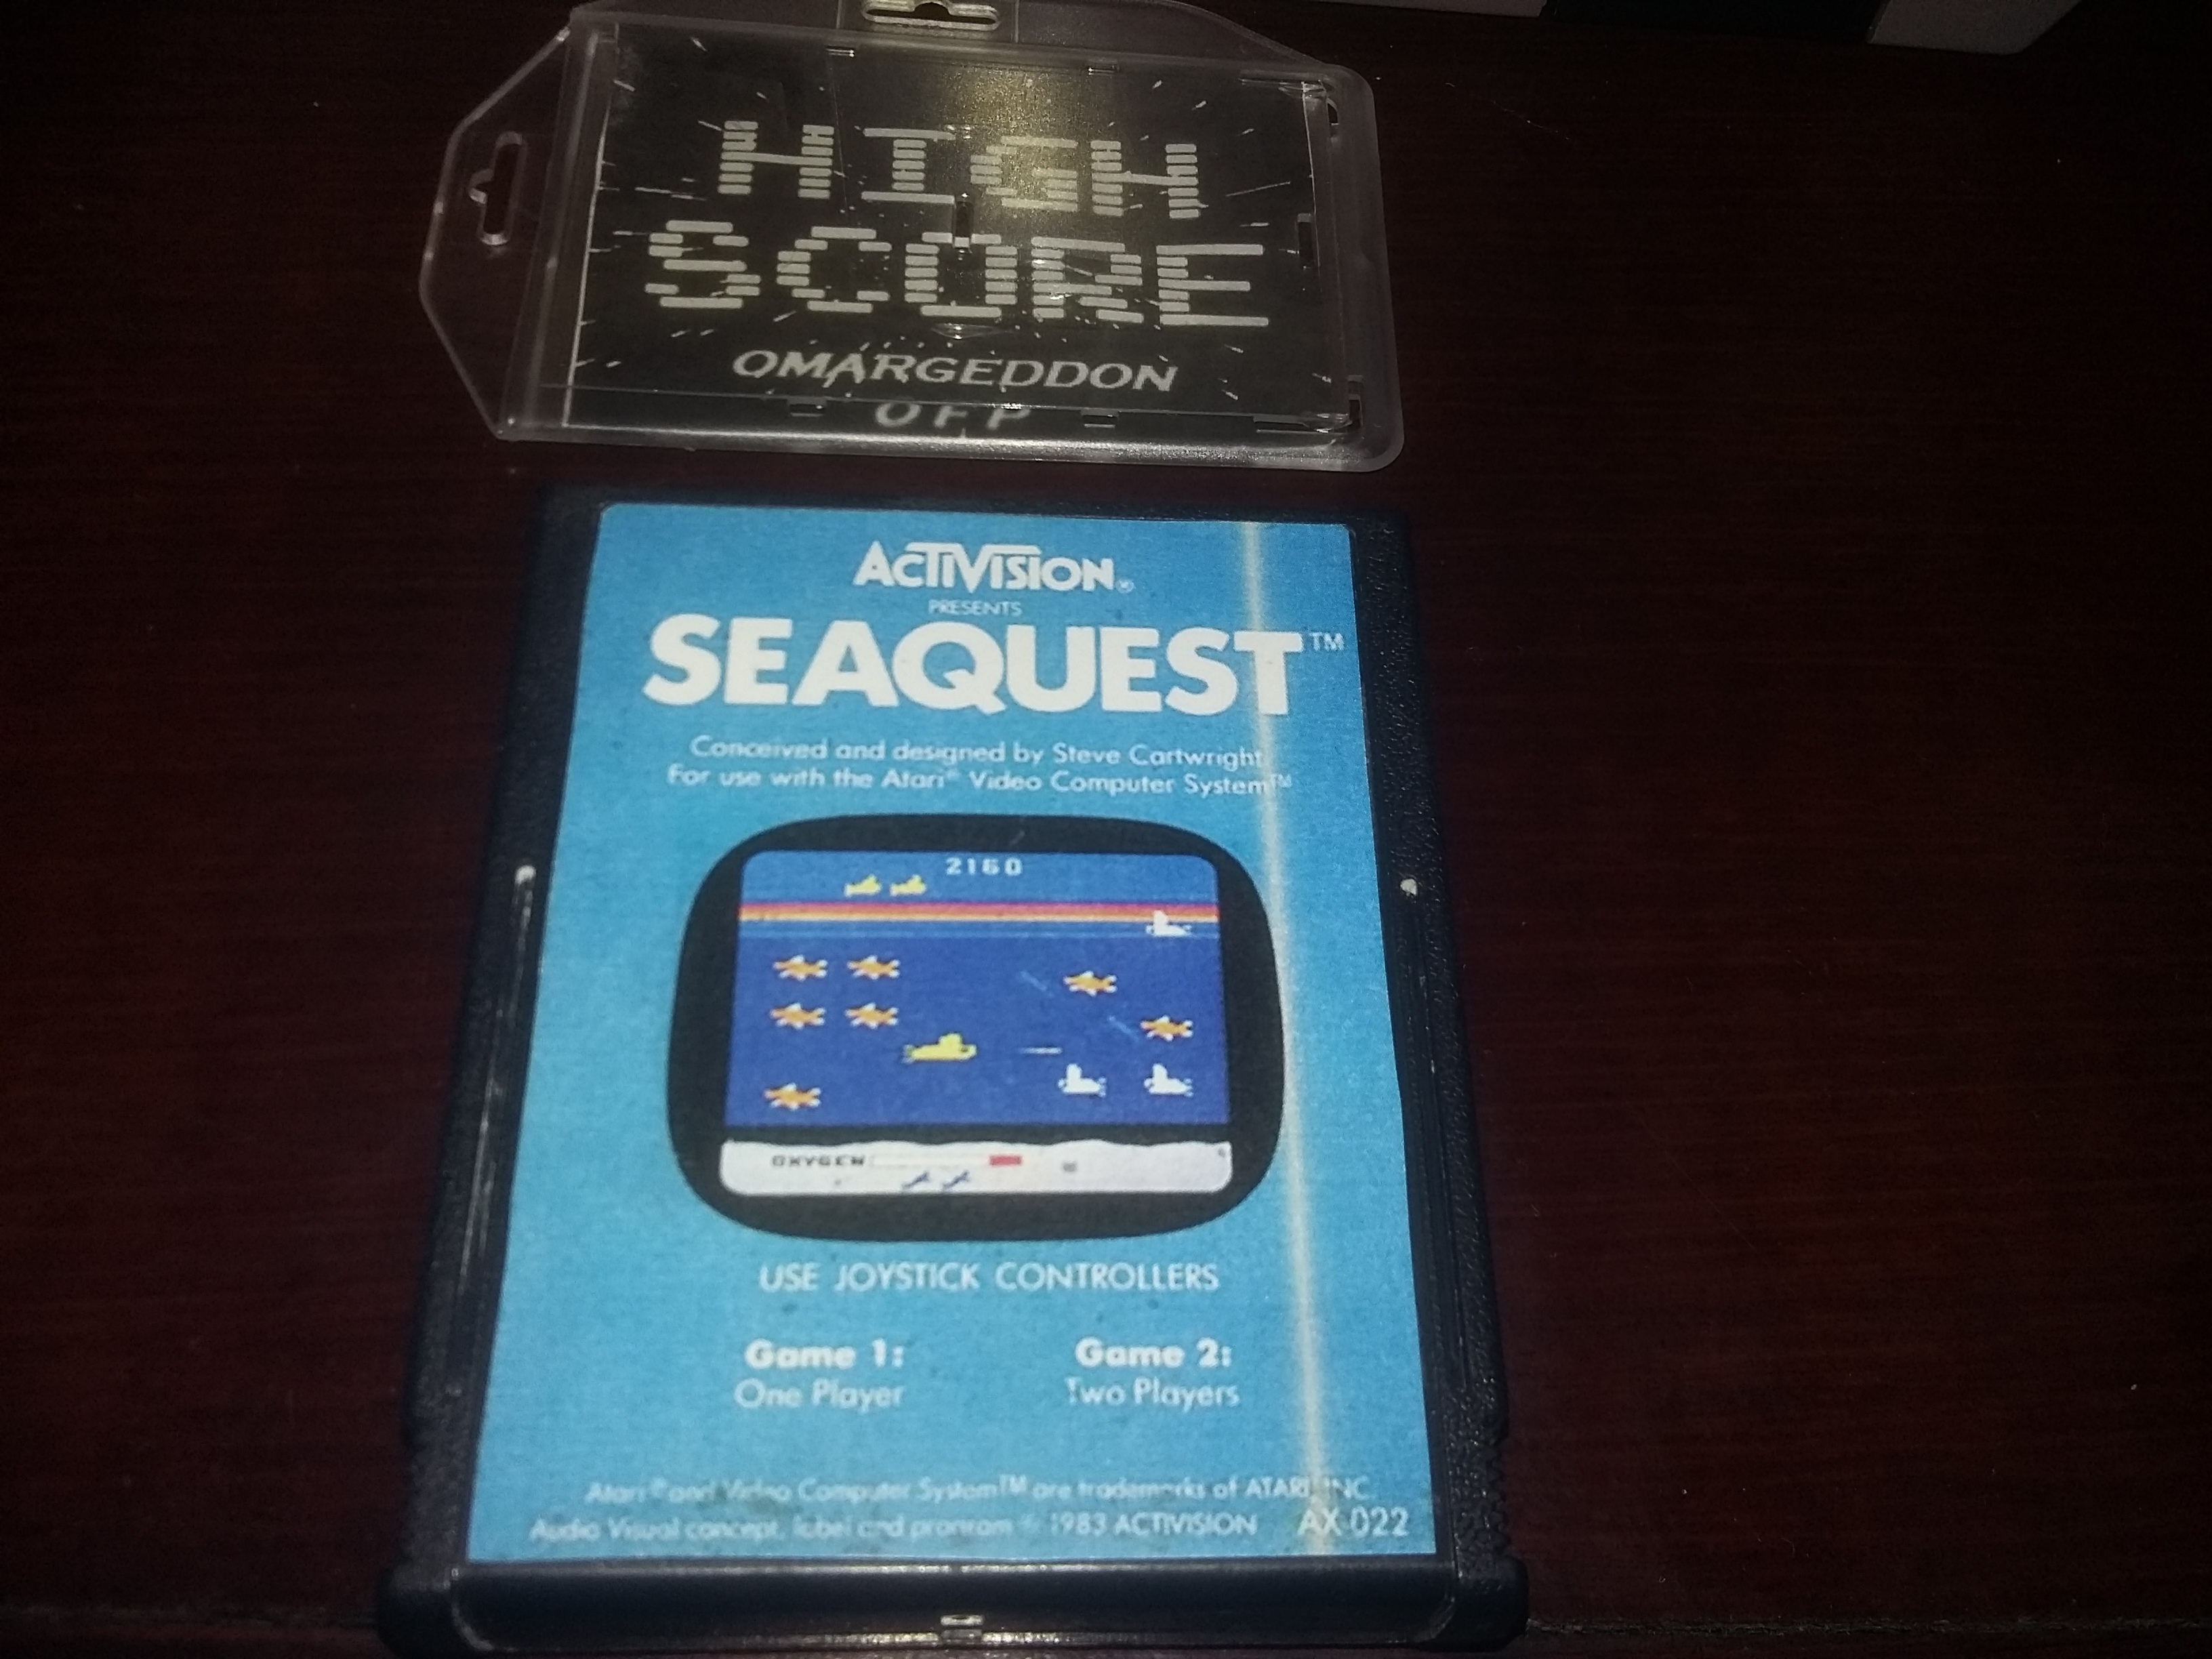 Seaquest 144,580 points